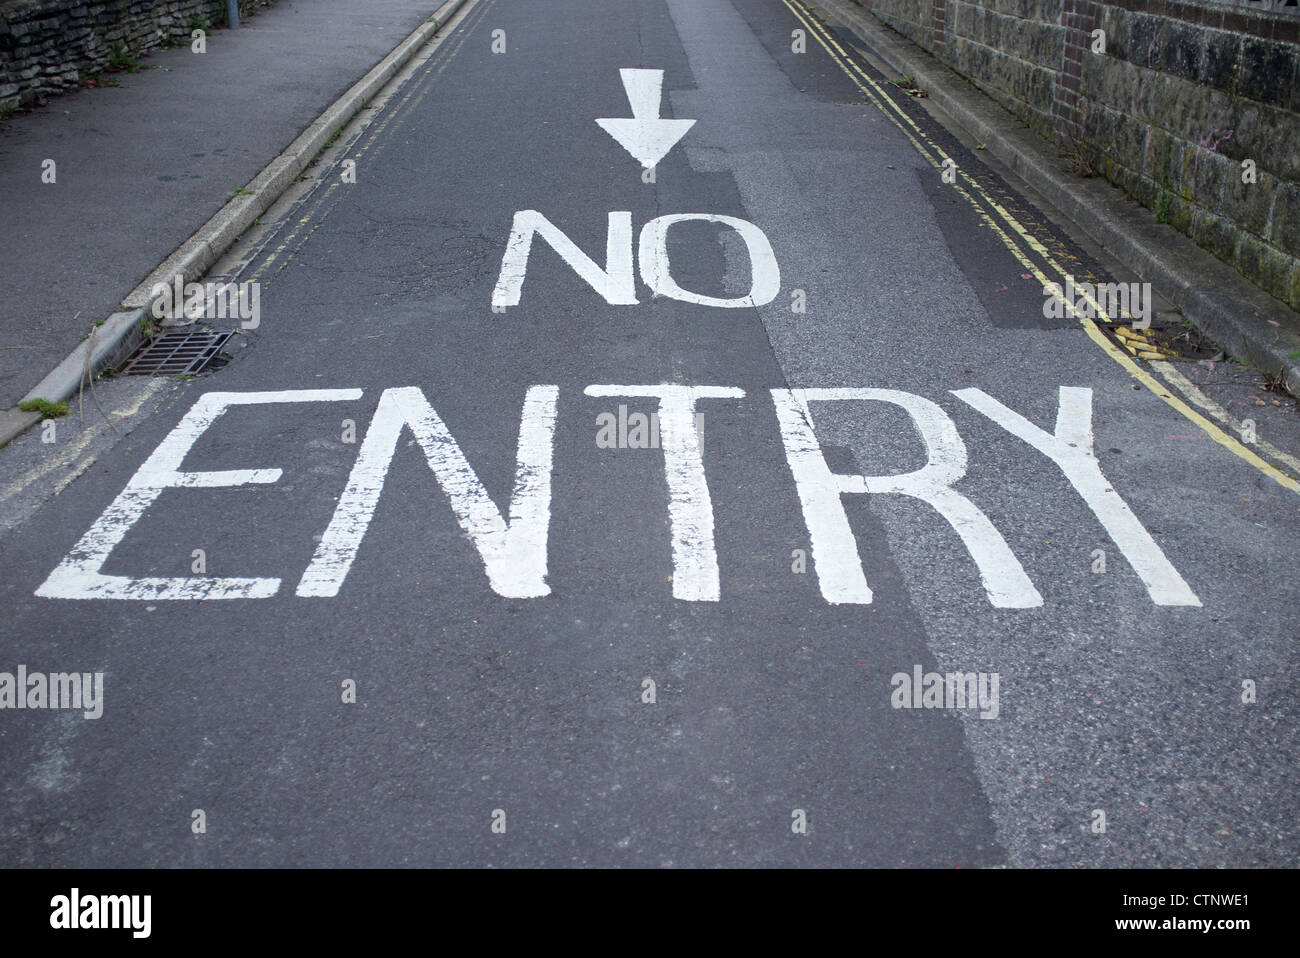 no entry road - Stock Image